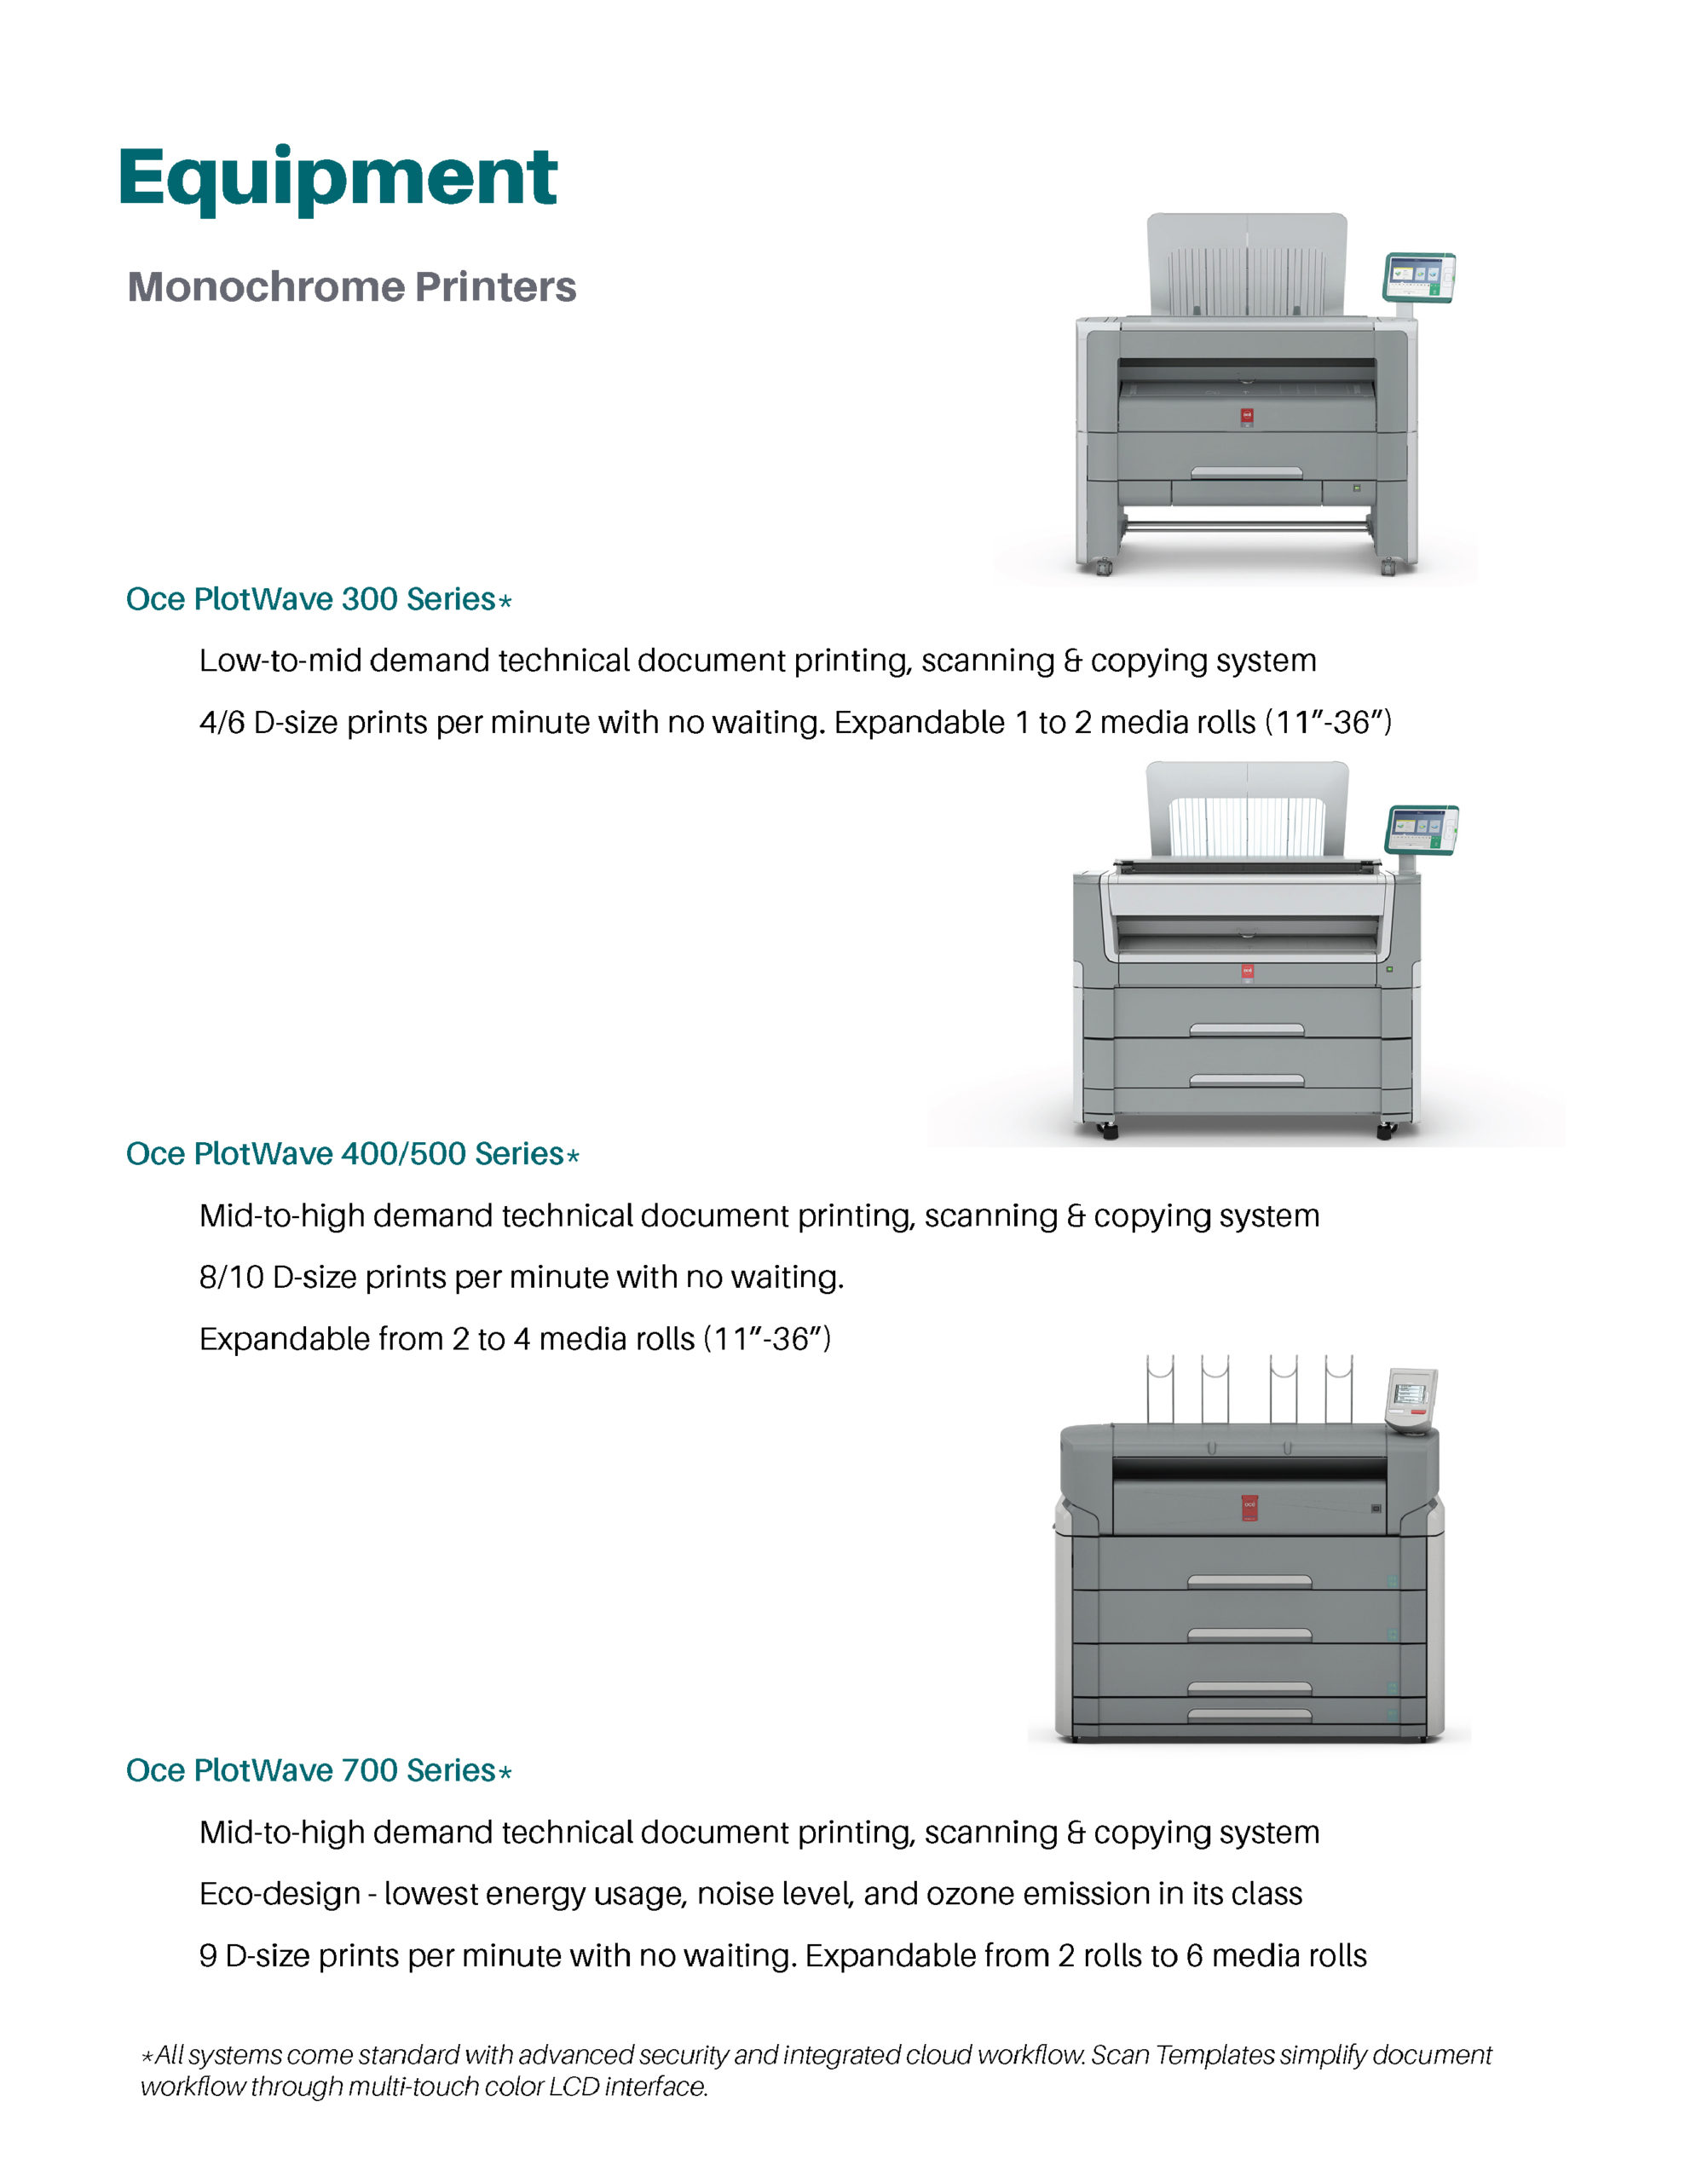 Page featuring product details on: monochrome printers